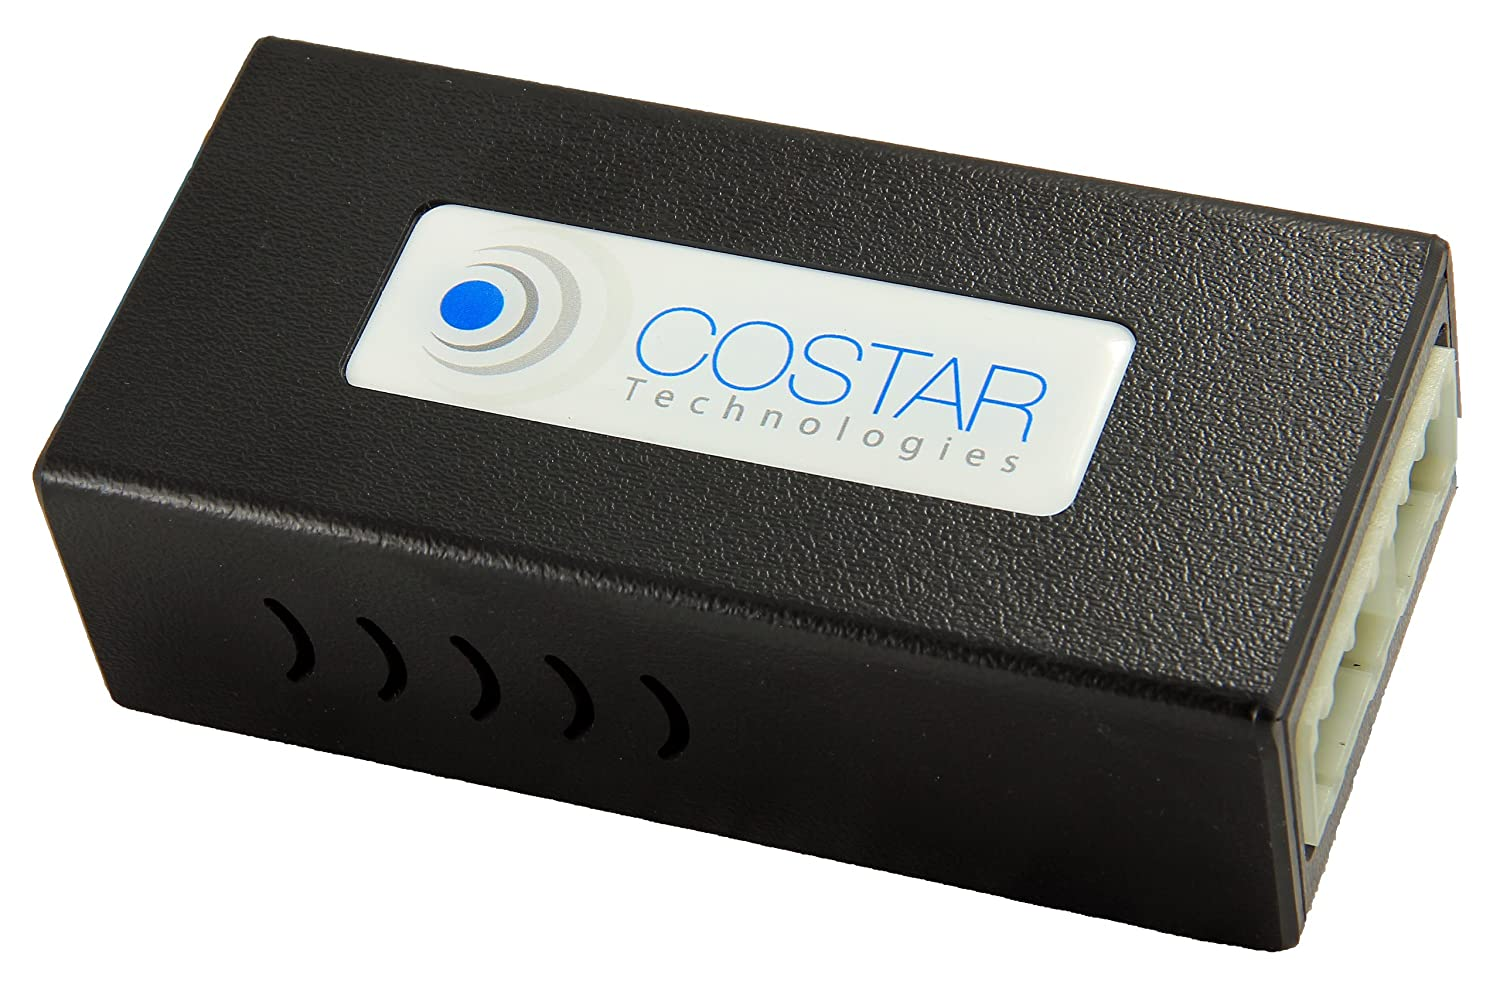 Amazon.com: Costar Bluestar Hands Free Bluetooth Kit for GM Vehicles: Car  Electronics